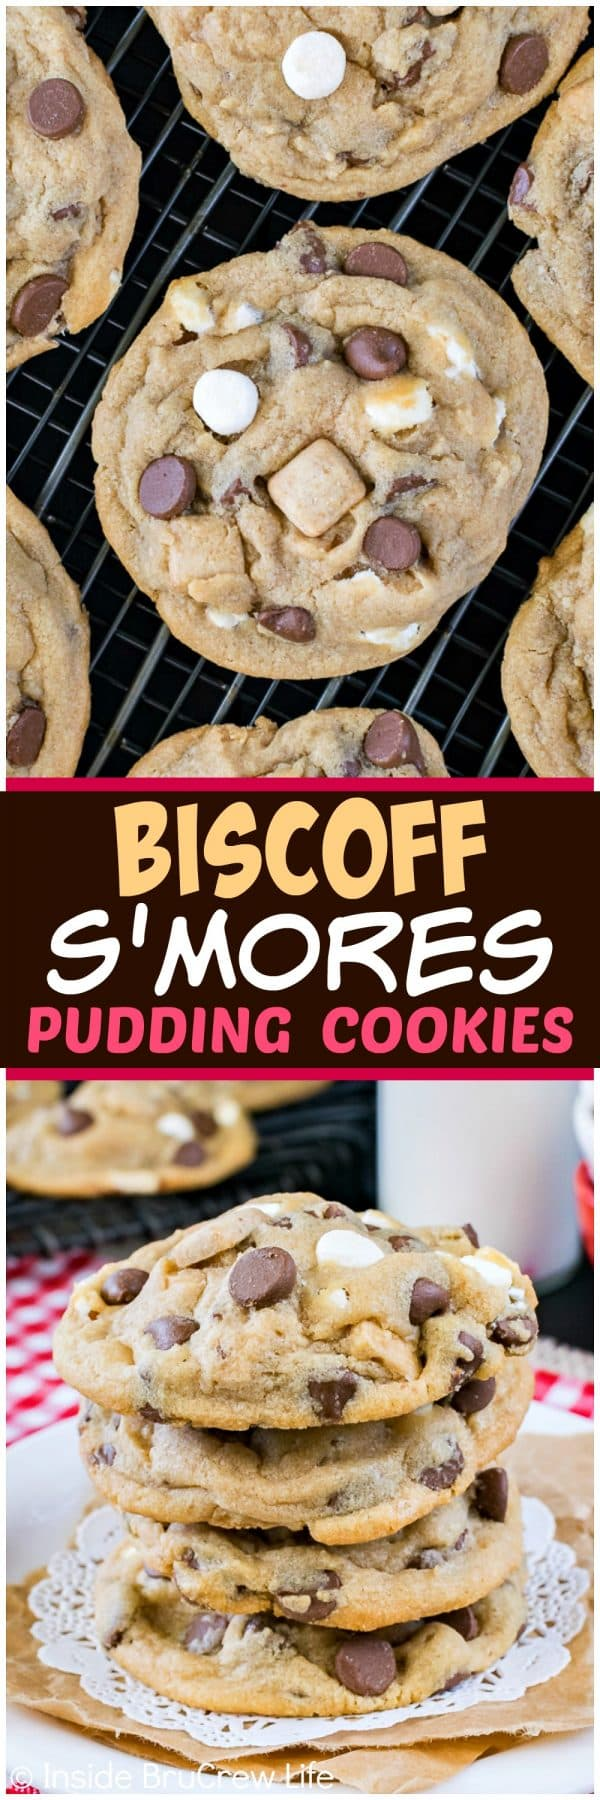 Biscoff S'mores Pudding Cookies - these soft and chewy cookies are loaded with lots of graham chunks, chocolate, and marshmallow pieces. Great recipe for lunch boxes or after school snacks!